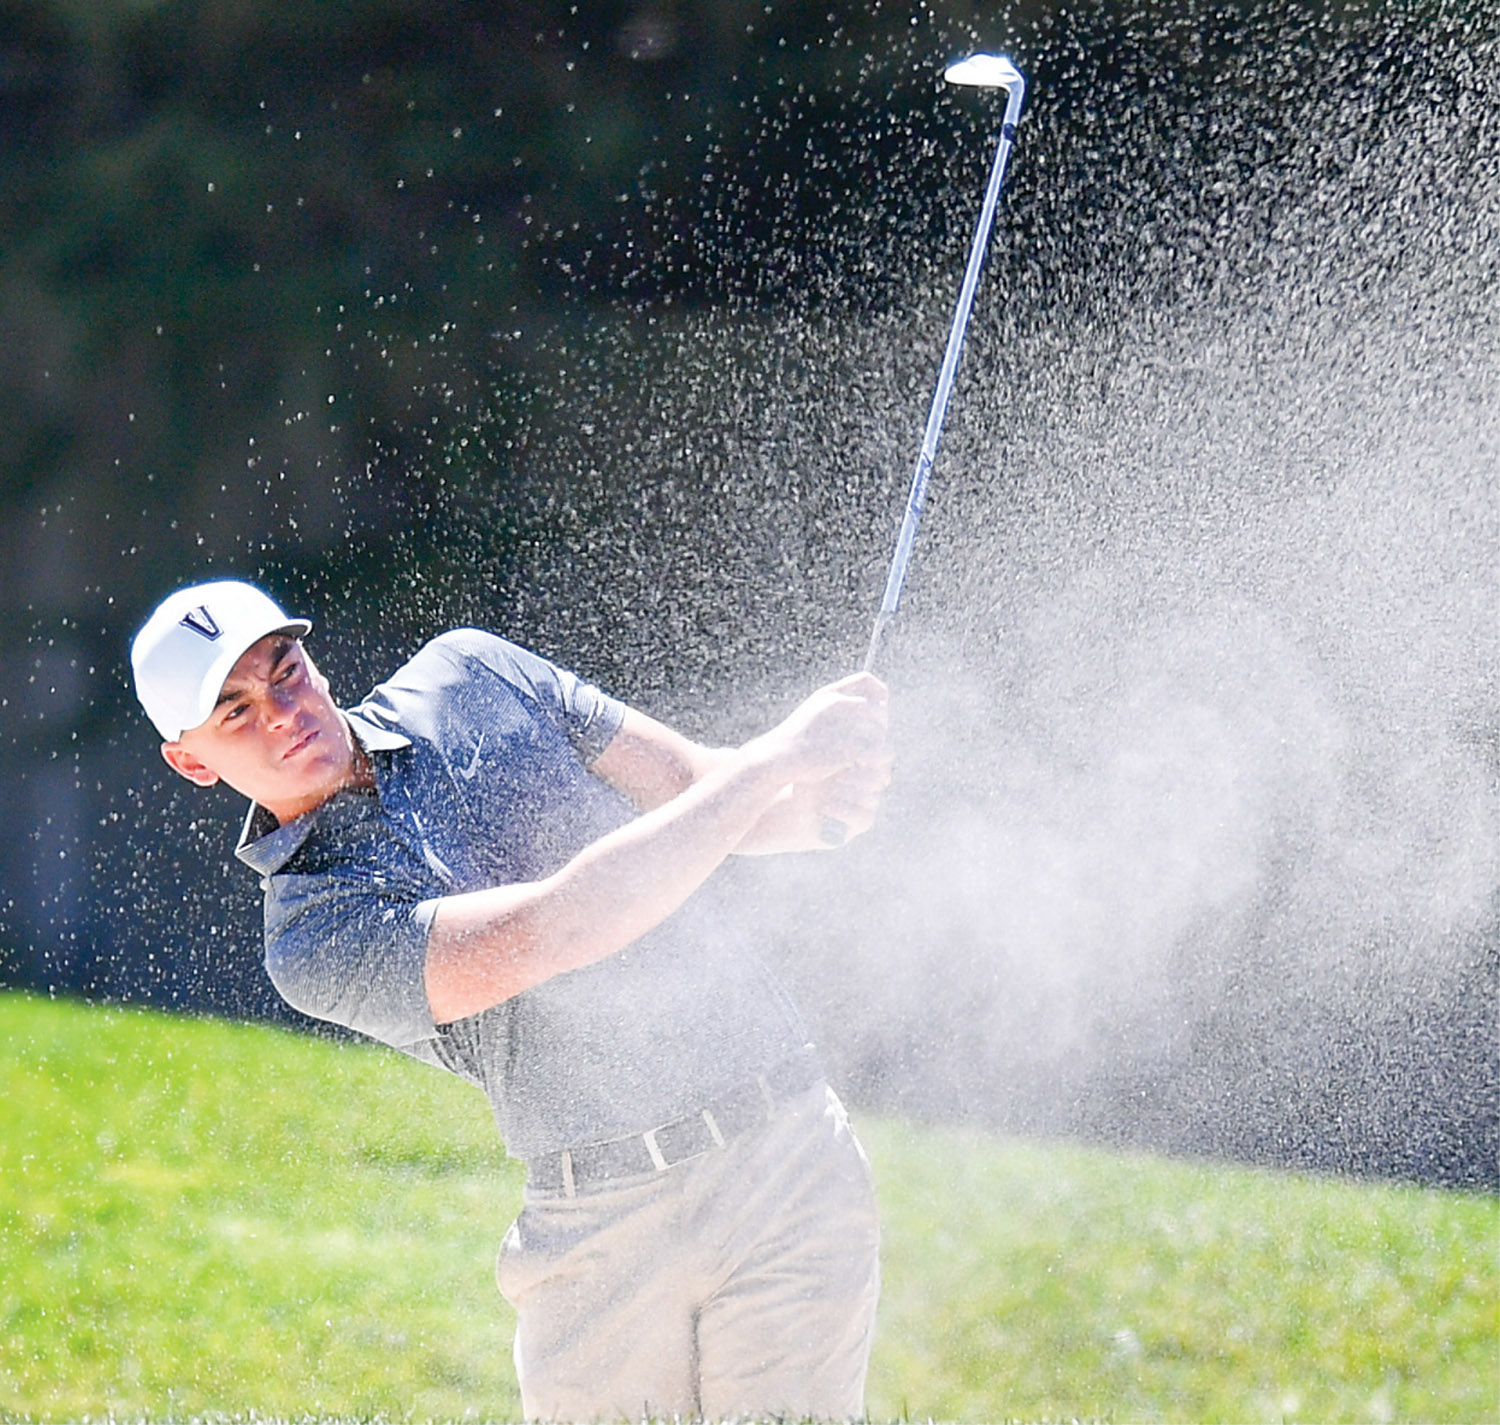 Encouraged by the vision of then-new Men's Golf Head Coach Scott Limbaugh, Theo Humphrey chose to attend Vanderbilt, helping lead the team to its first SEC championship in 2017. (VANDERBILT ATHLETICS)